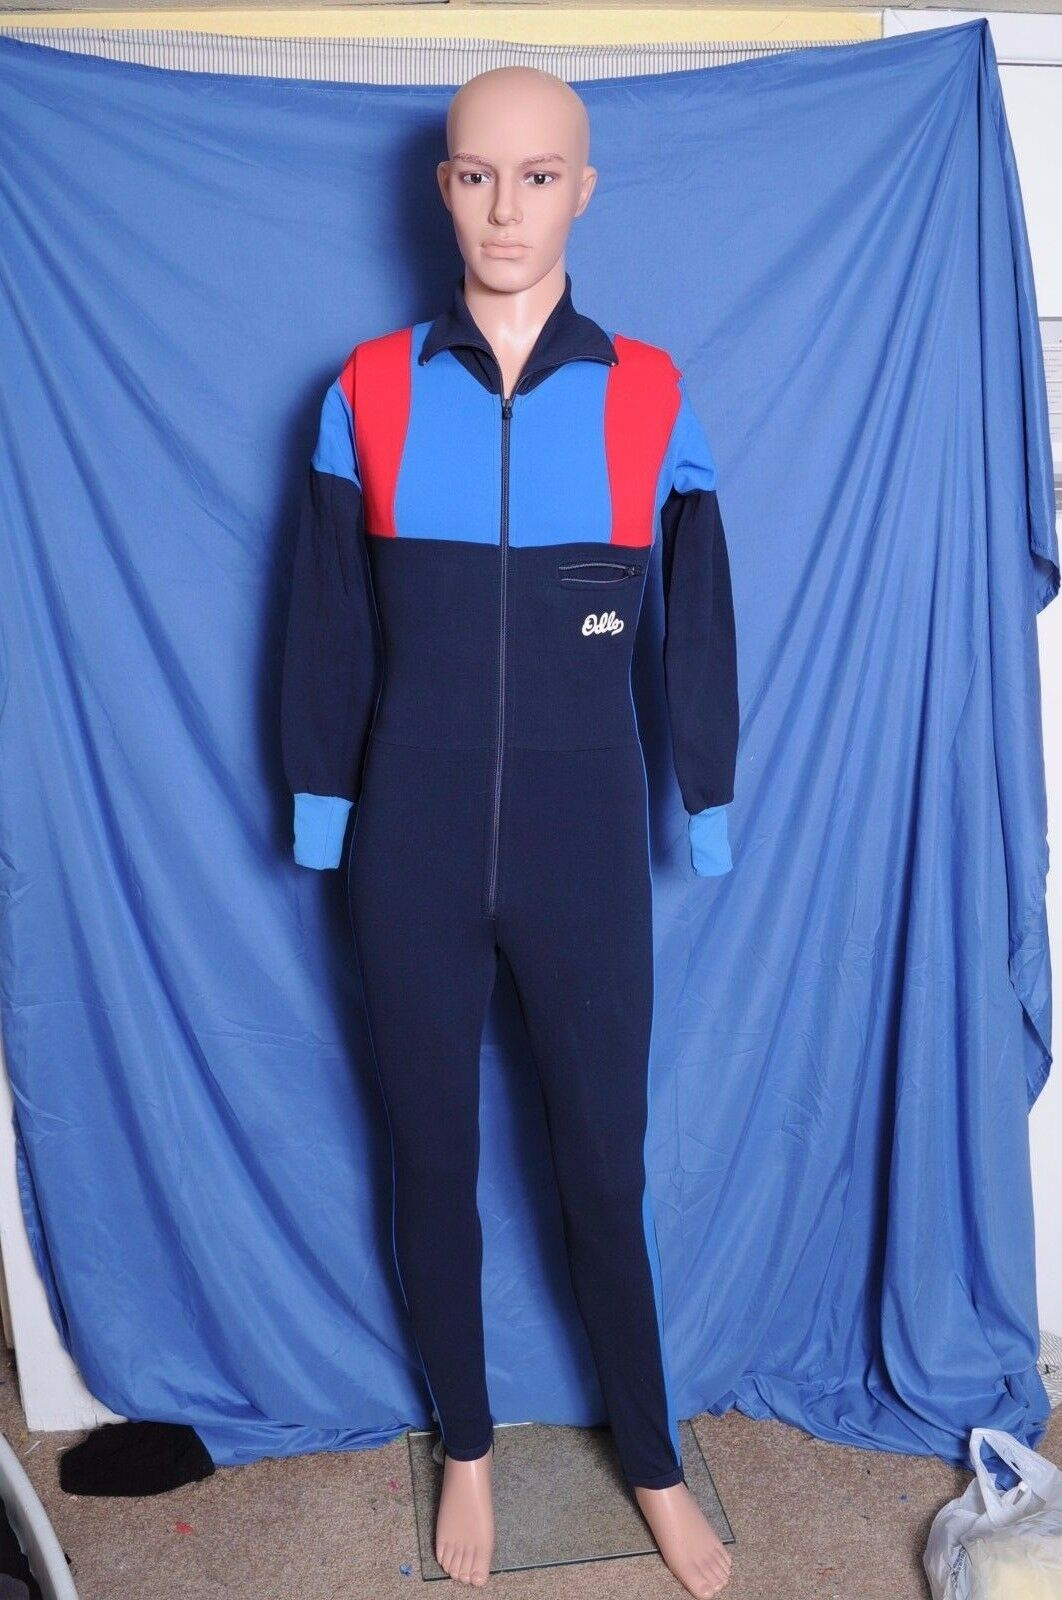 Vintage '80s Odlo nylon stretch ski racing cross country suit 16 S Norway